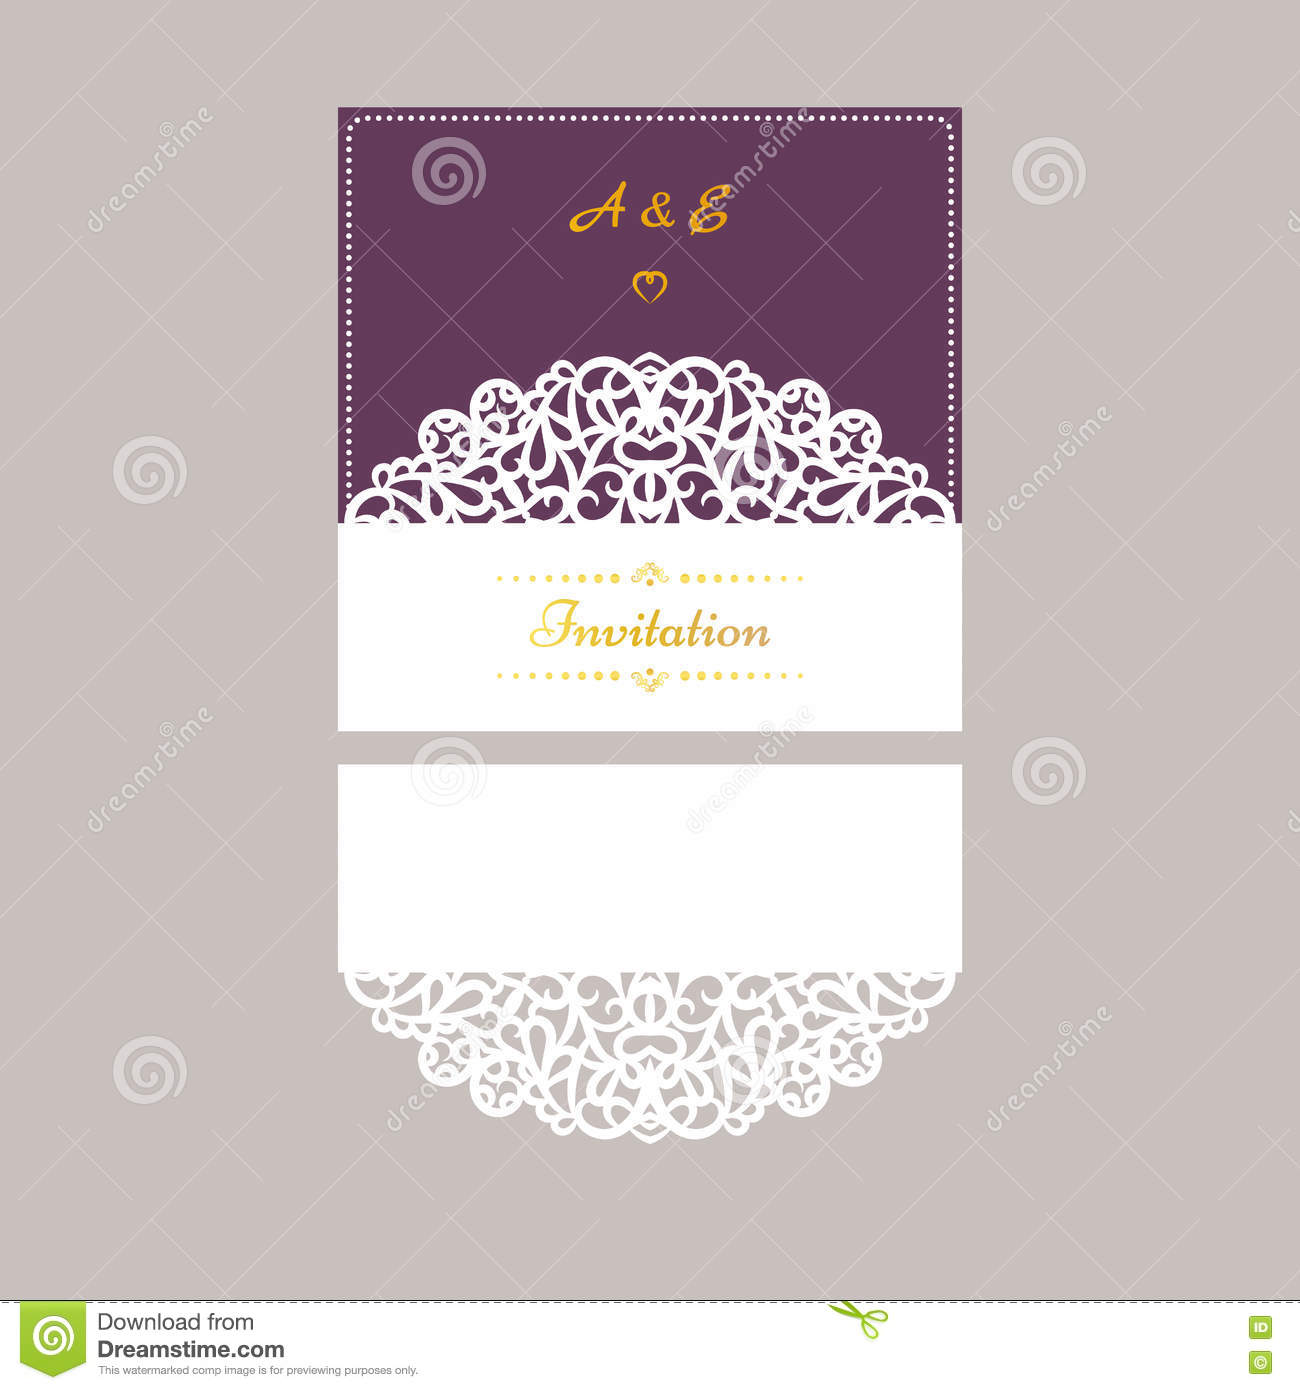 Lazercut vector wedding invitation template wedding invitation download lazercut vector wedding invitation template wedding invitation envelope for laser cutting lace gate stopboris Image collections